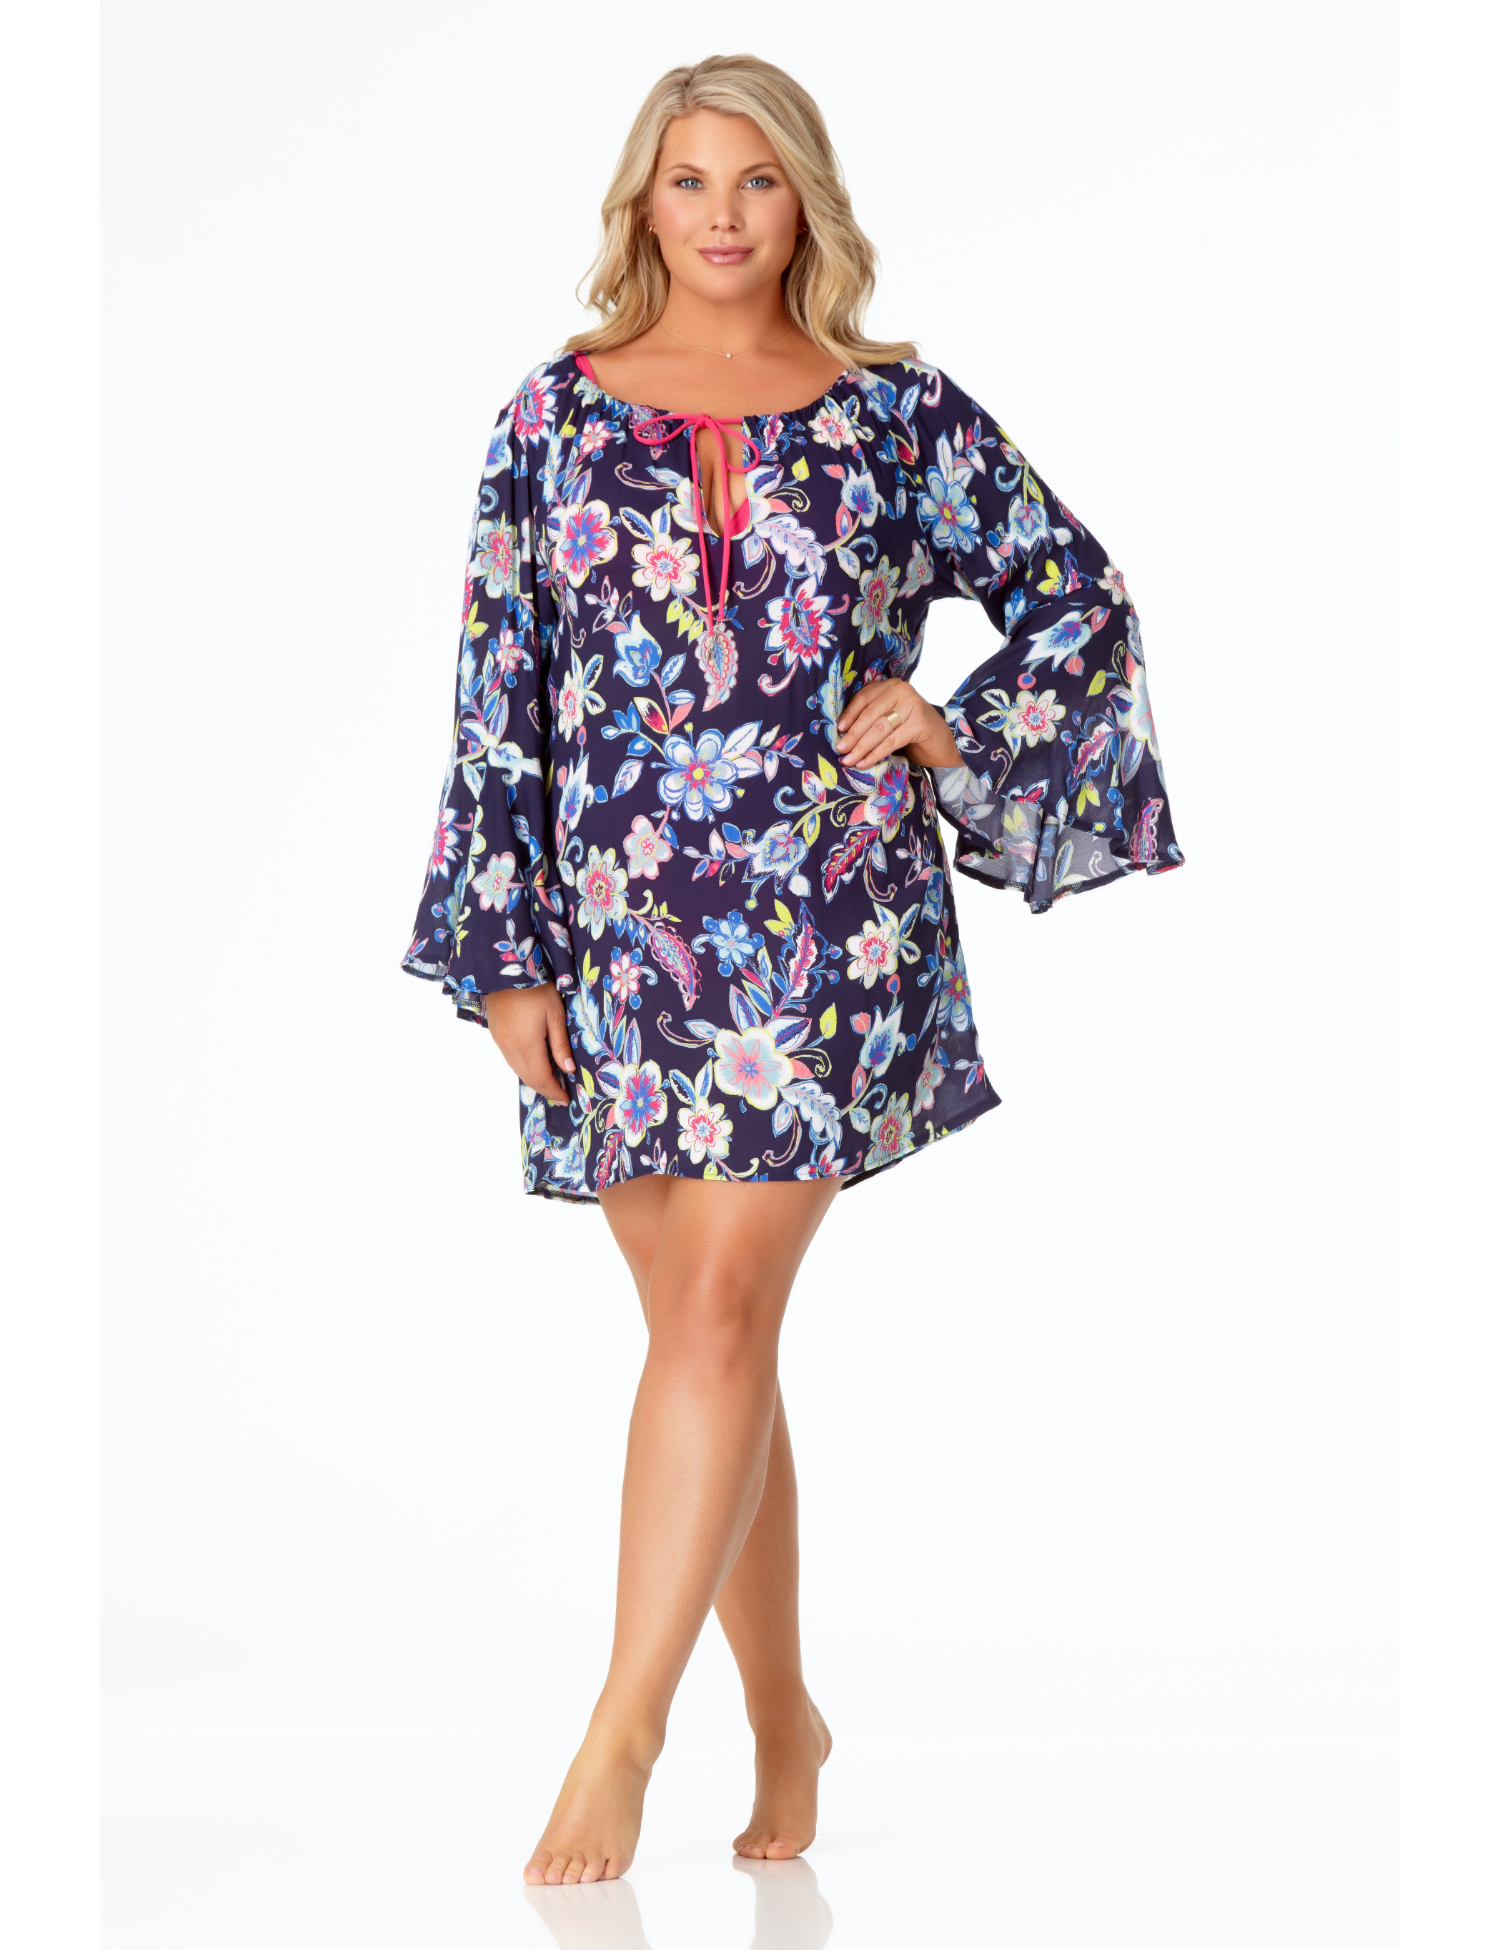 Anne Cole® Holiday Paisley Lace-Up Tunic Swimsuit Cover-Up -Multi - Front